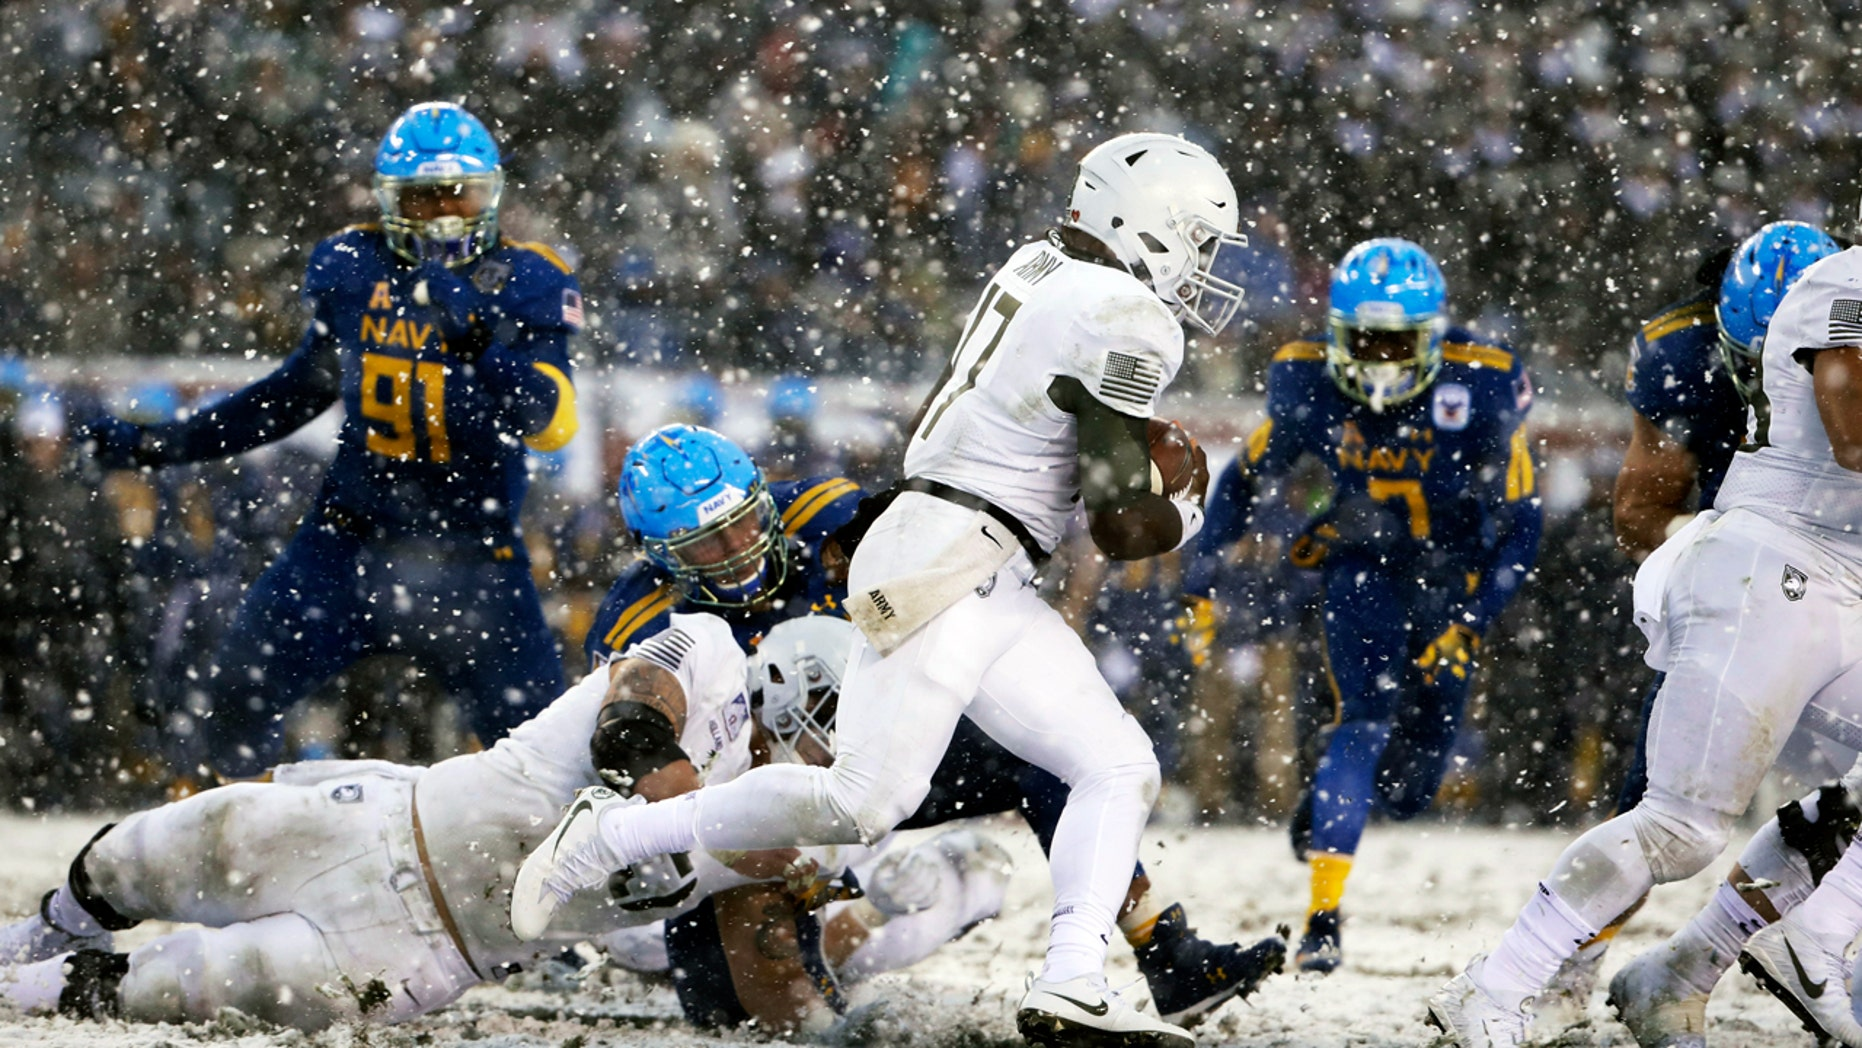 Army quarterback Ahmad Bradshaw runs the ball against Navy during the first half of Saturday's Army-Navy game in Philadelphia